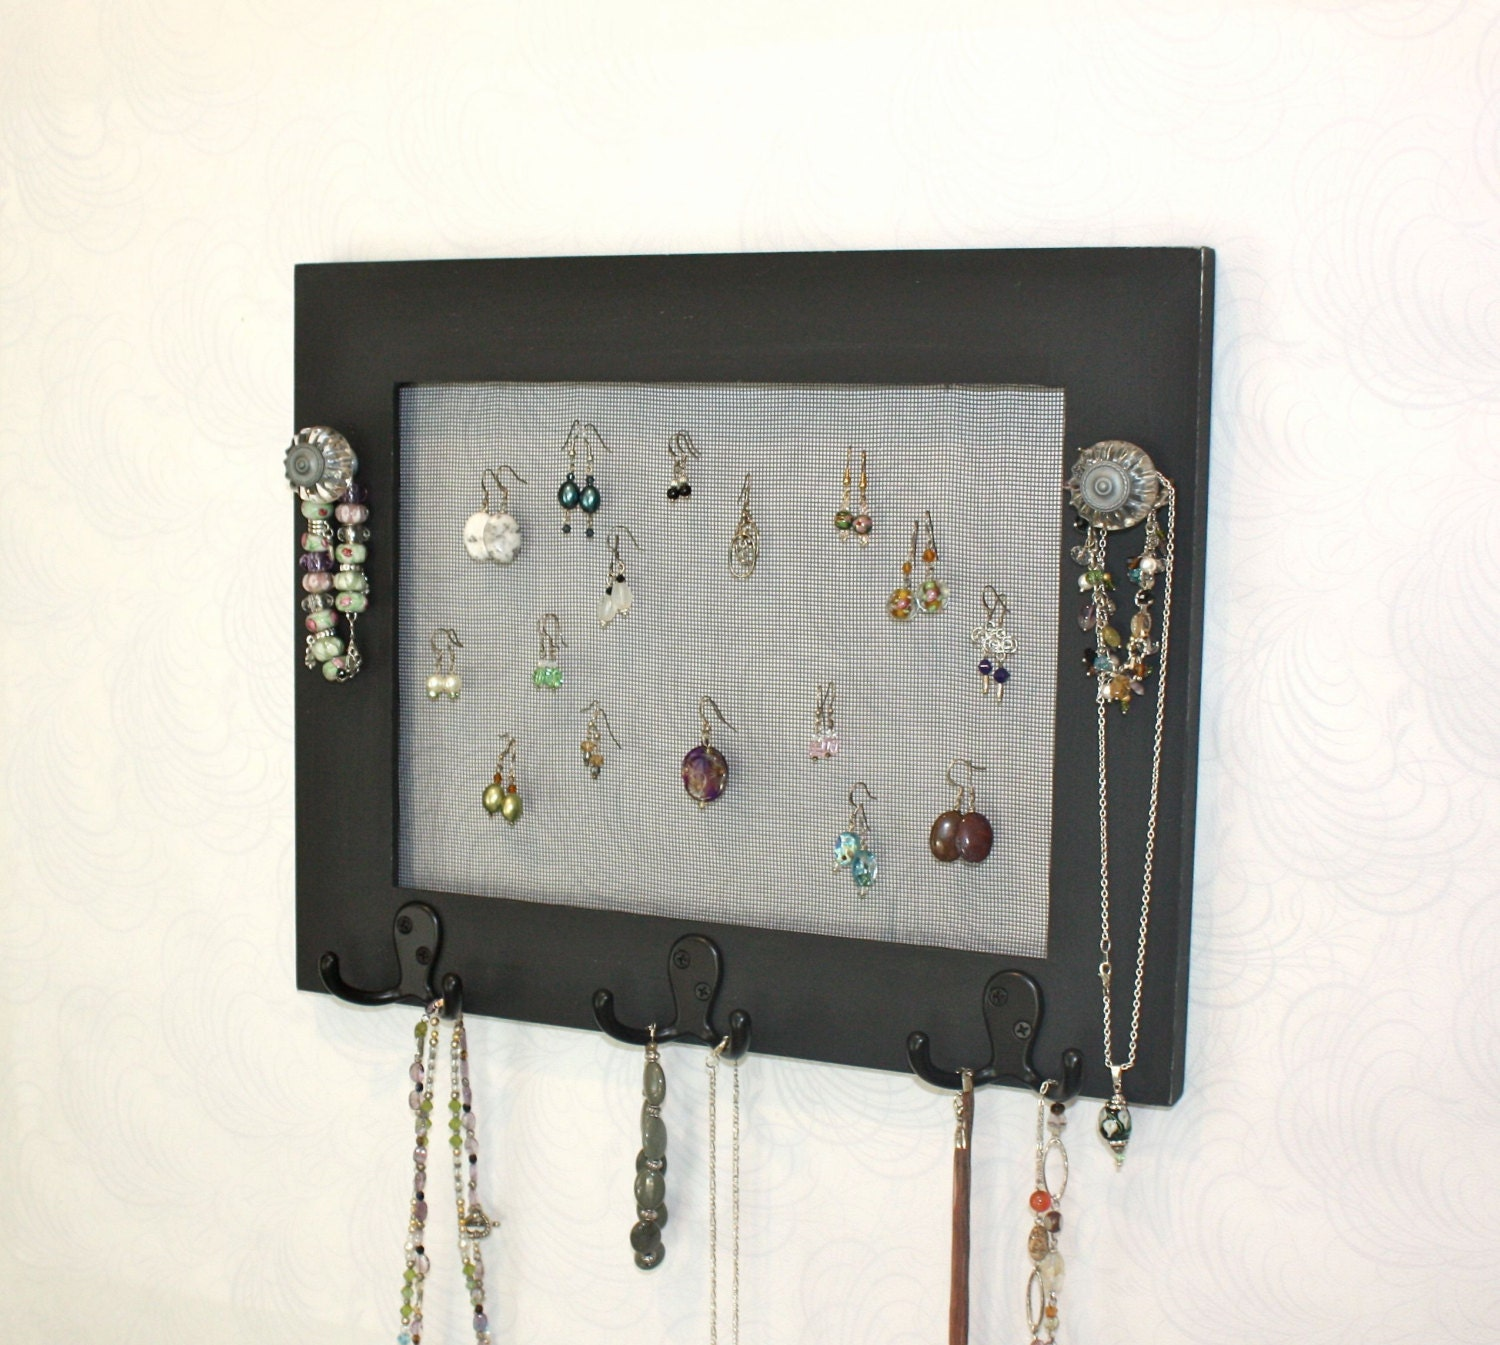 Jewelry Organizers Wall: Jewelry Display-Earring Organizer Wall Mounted By Onthewallusa